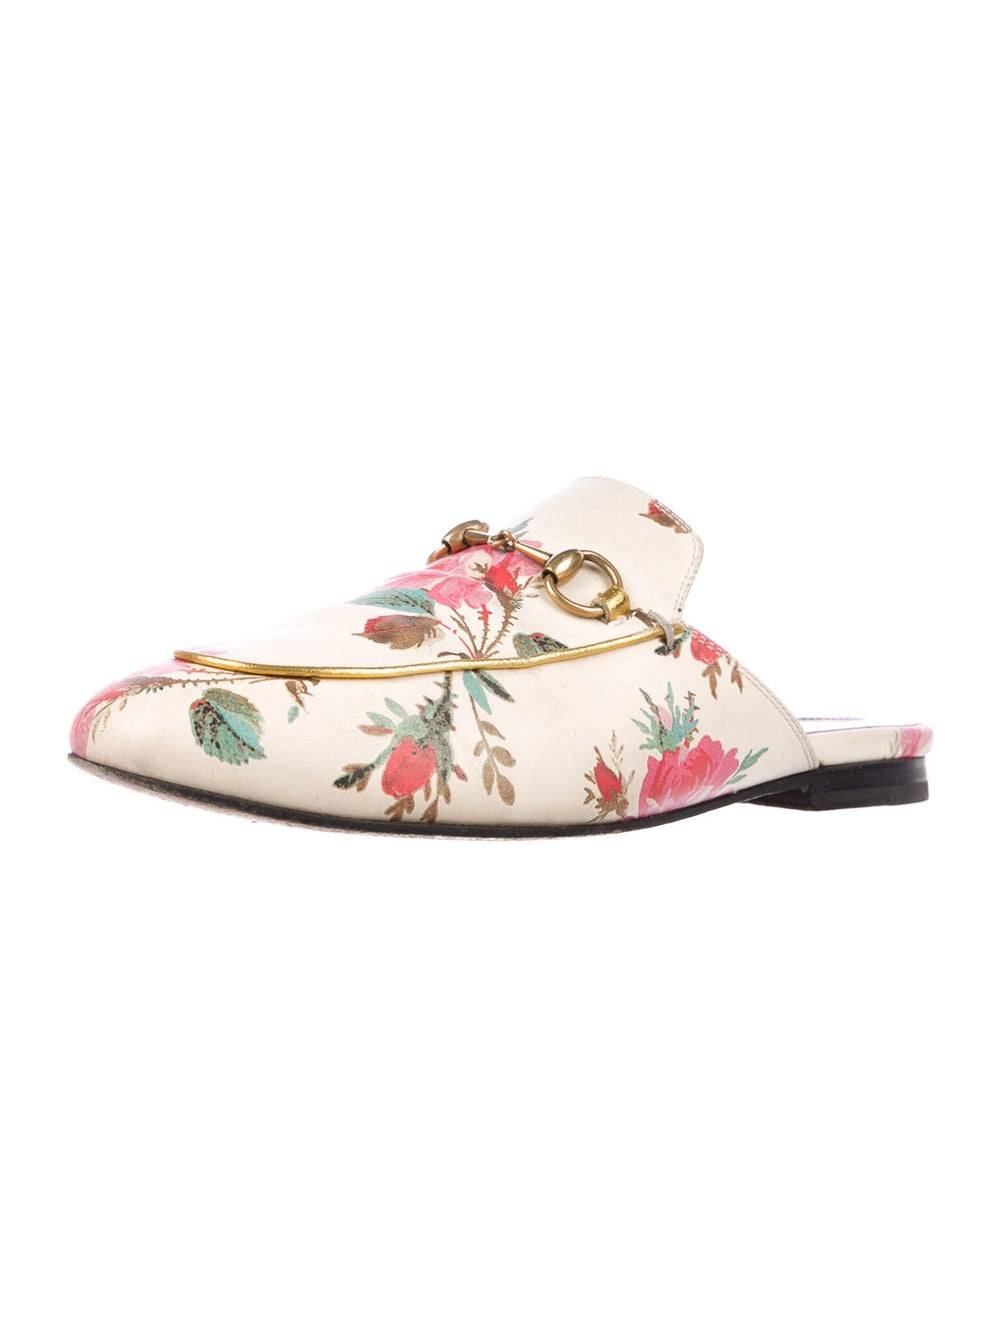 Gucci Princetown Floral Mules Leather Mules - image 2